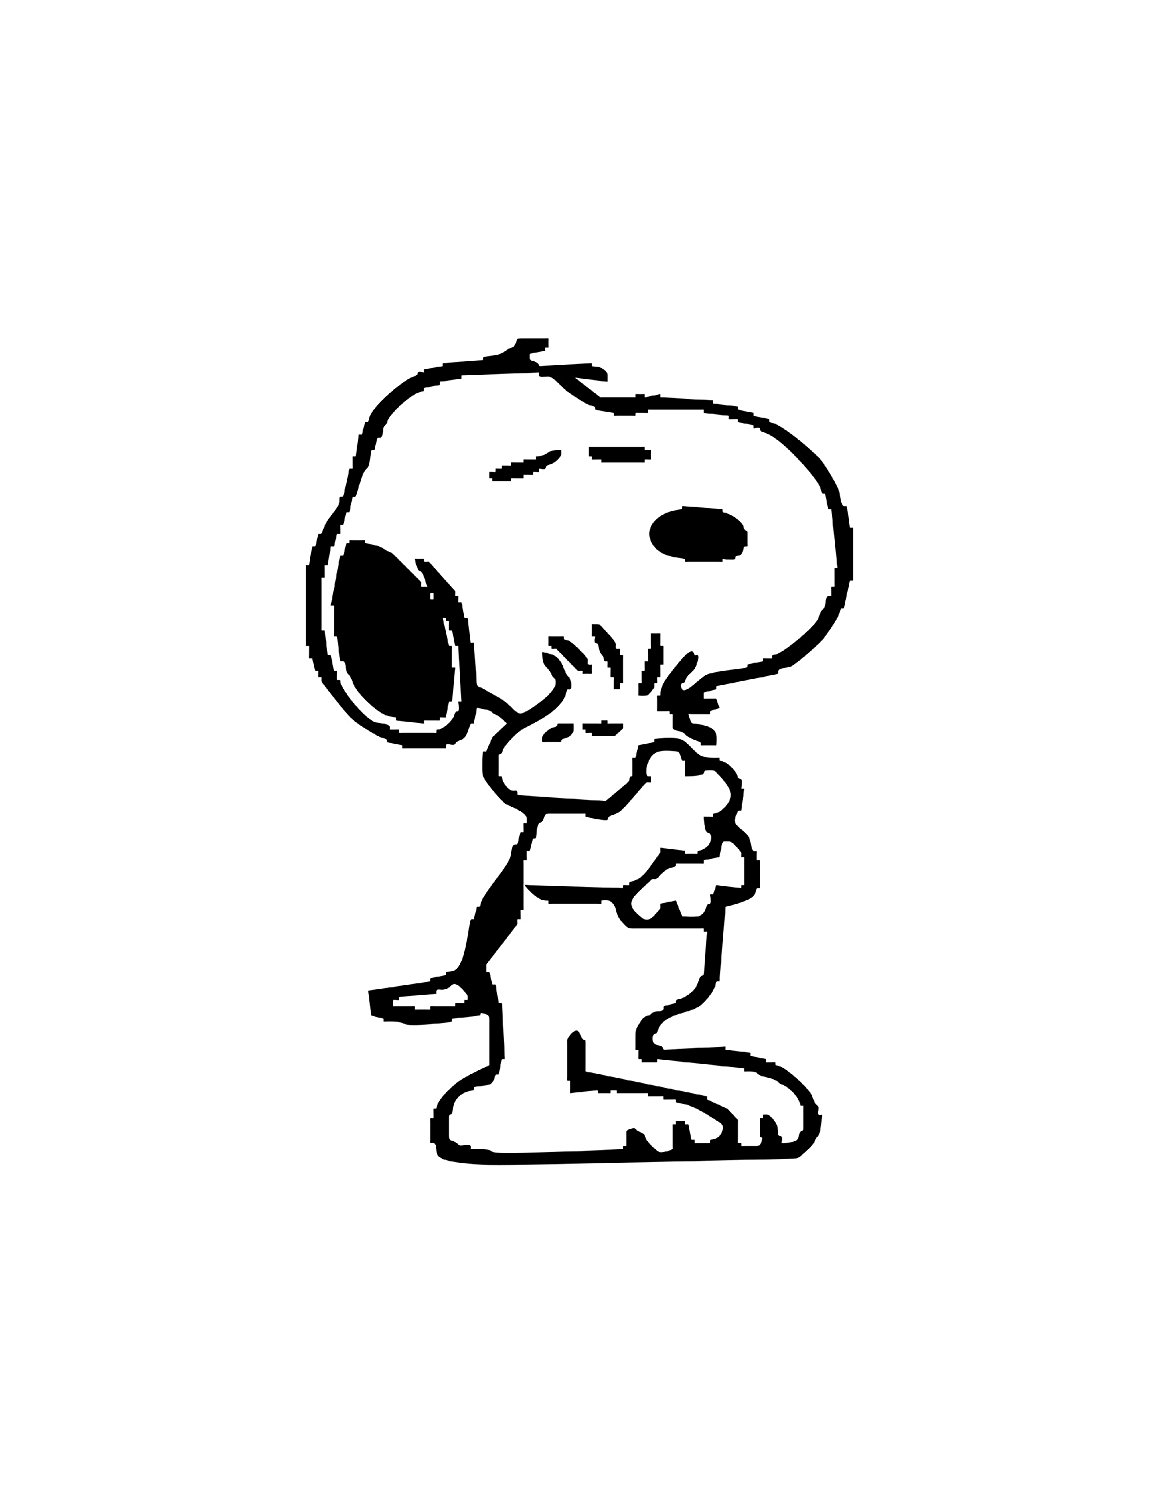 Snoopy And Woodstock Coloring Pages Woodstock Snoopy Coloring Pages